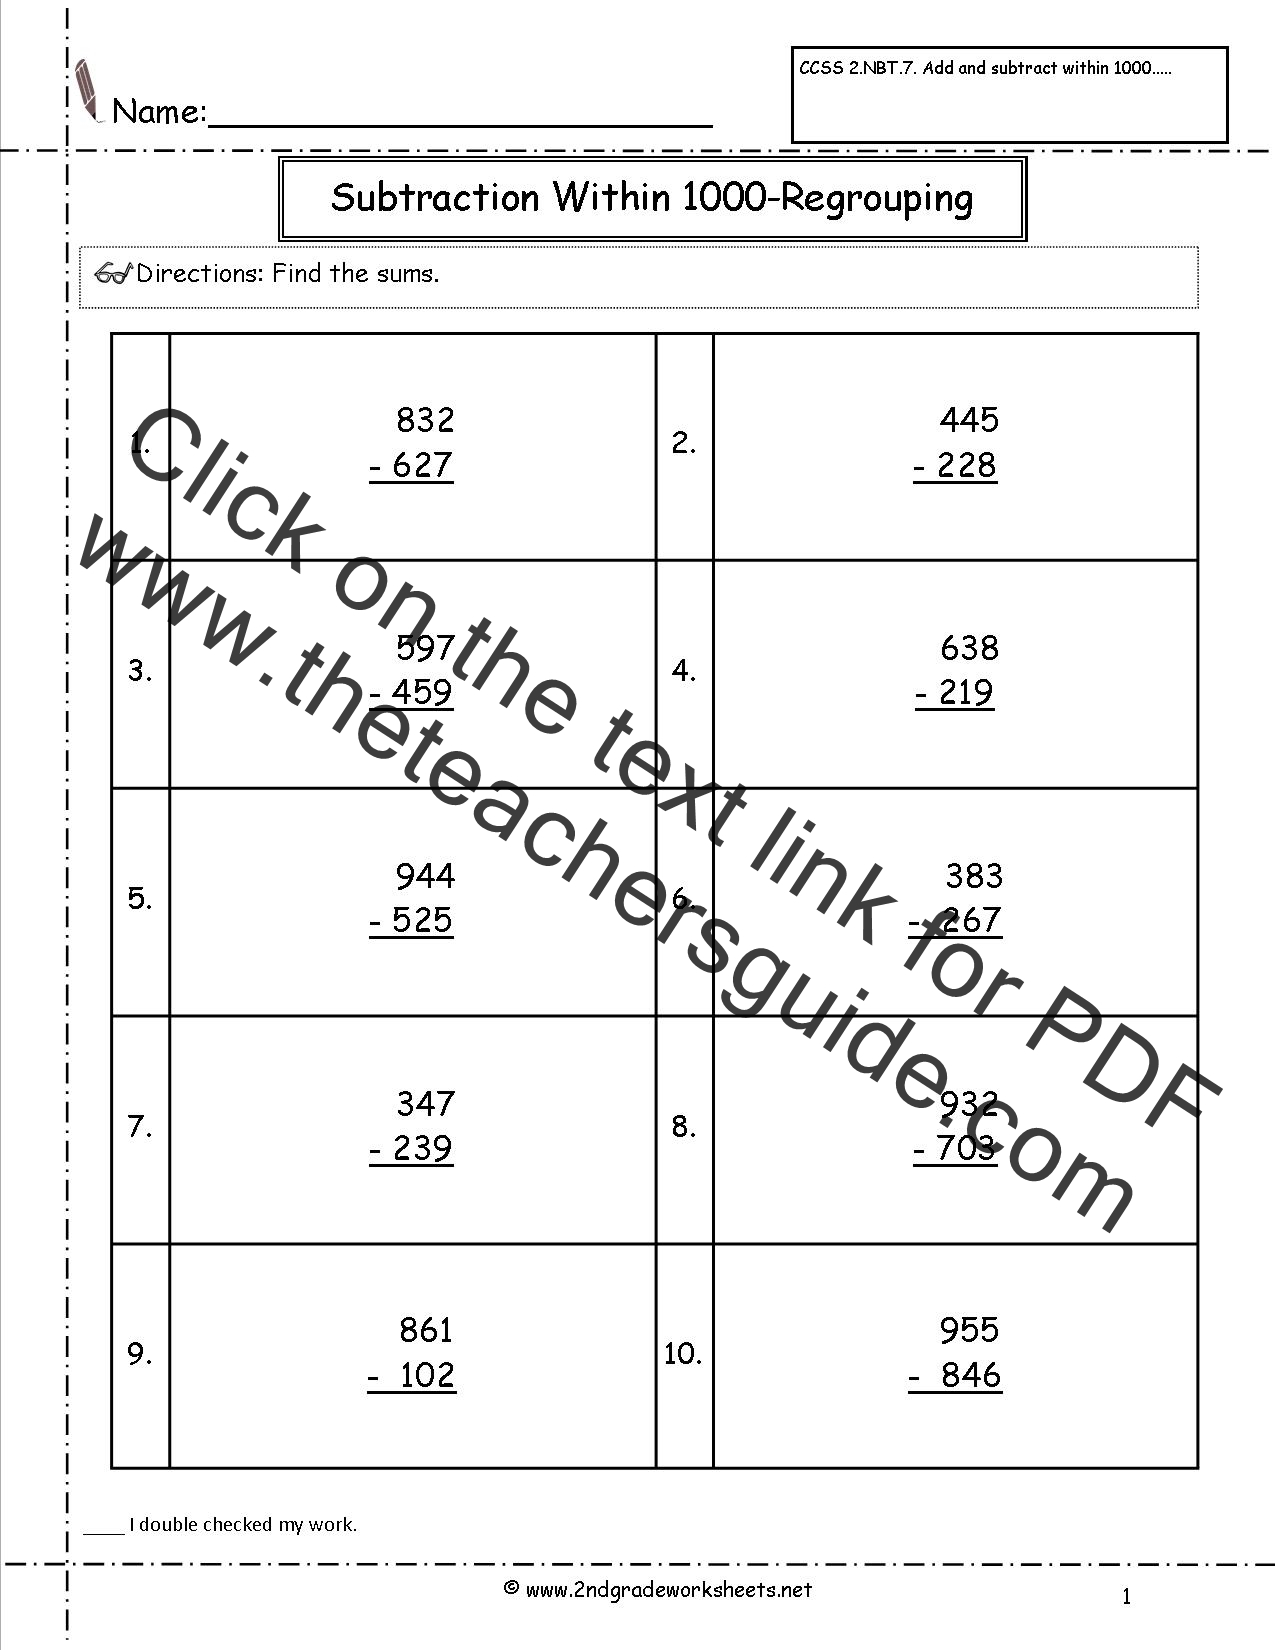 CCSS 2NBT7 Worksheets Addition and Subtraction Within 1000 – Composing and Decomposing Numbers Worksheet